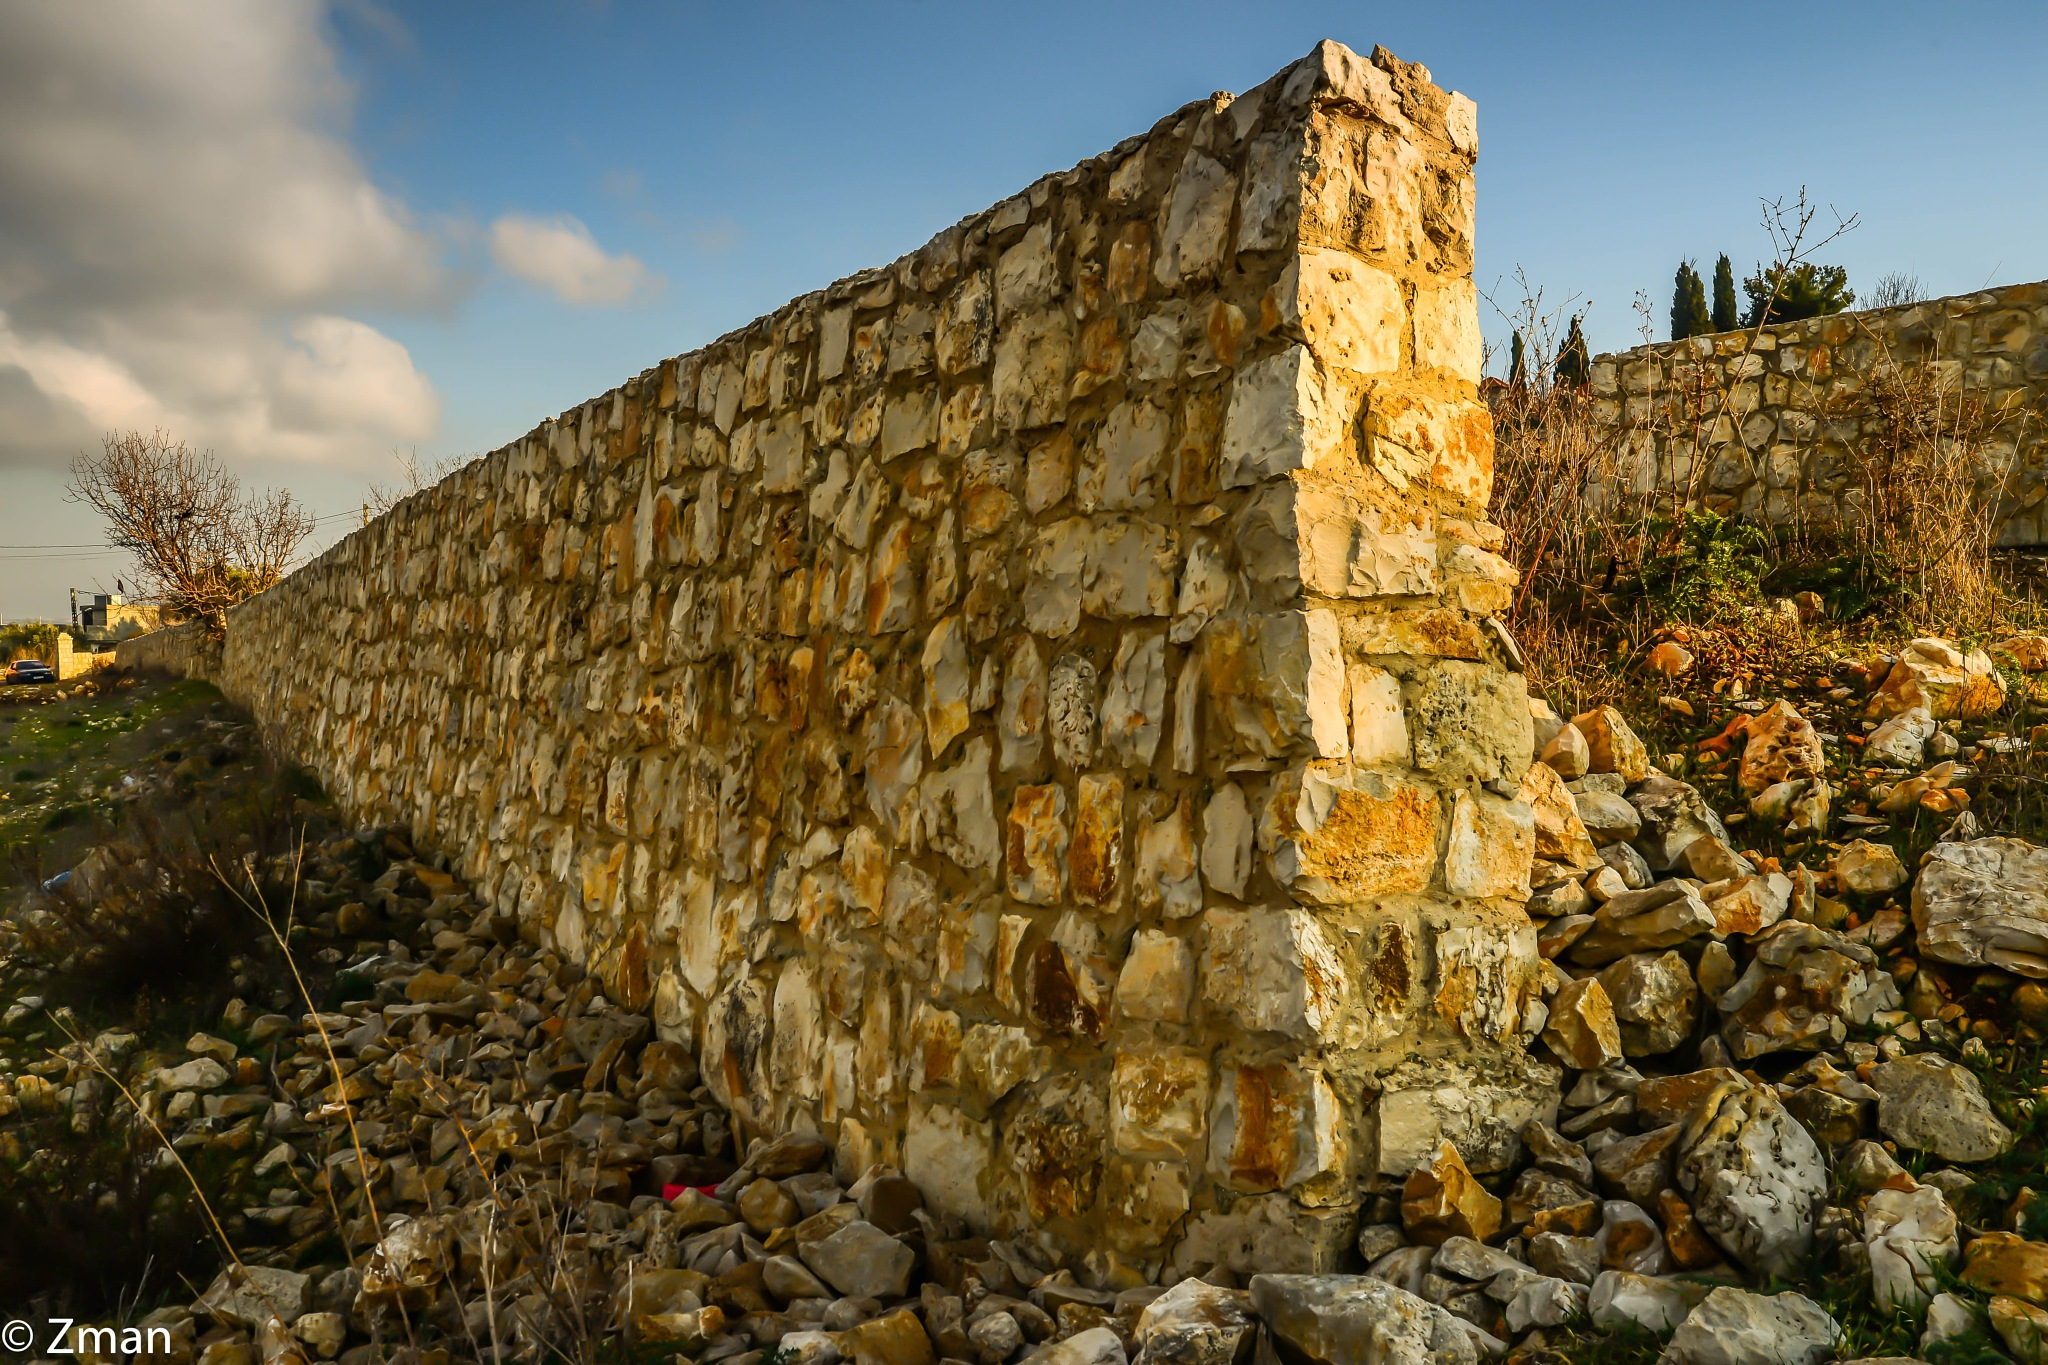 The Wall by muhammad.nasser.963